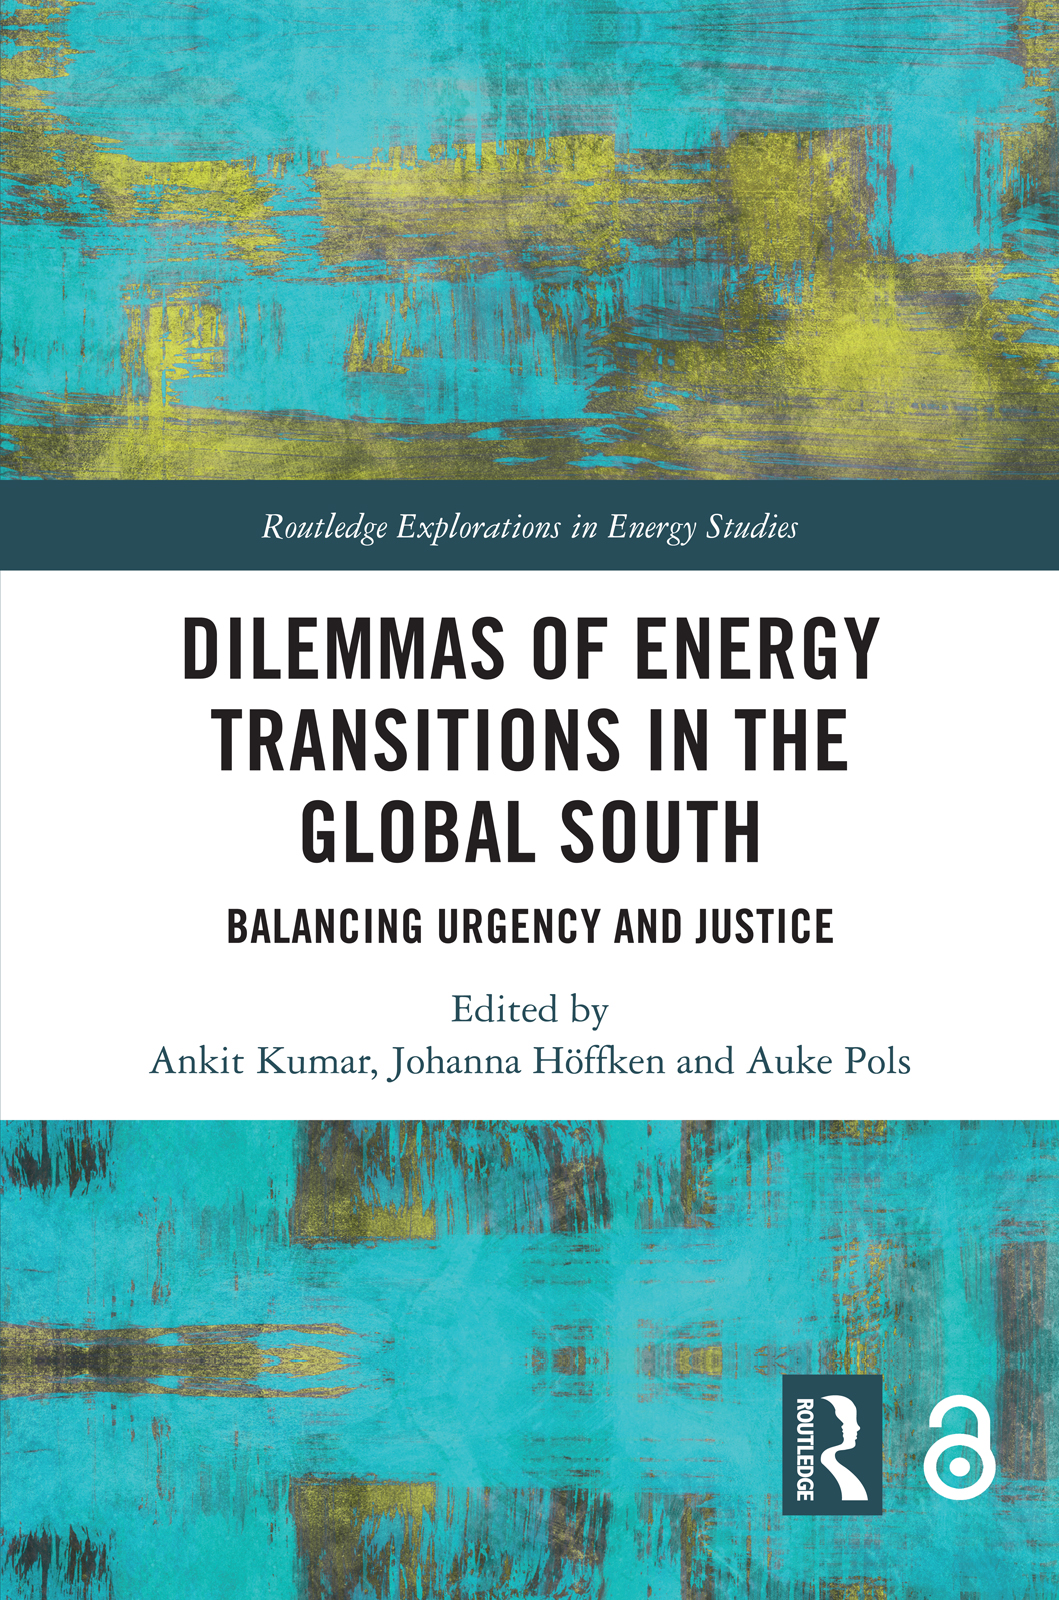 Energy transitions in a post-war setting